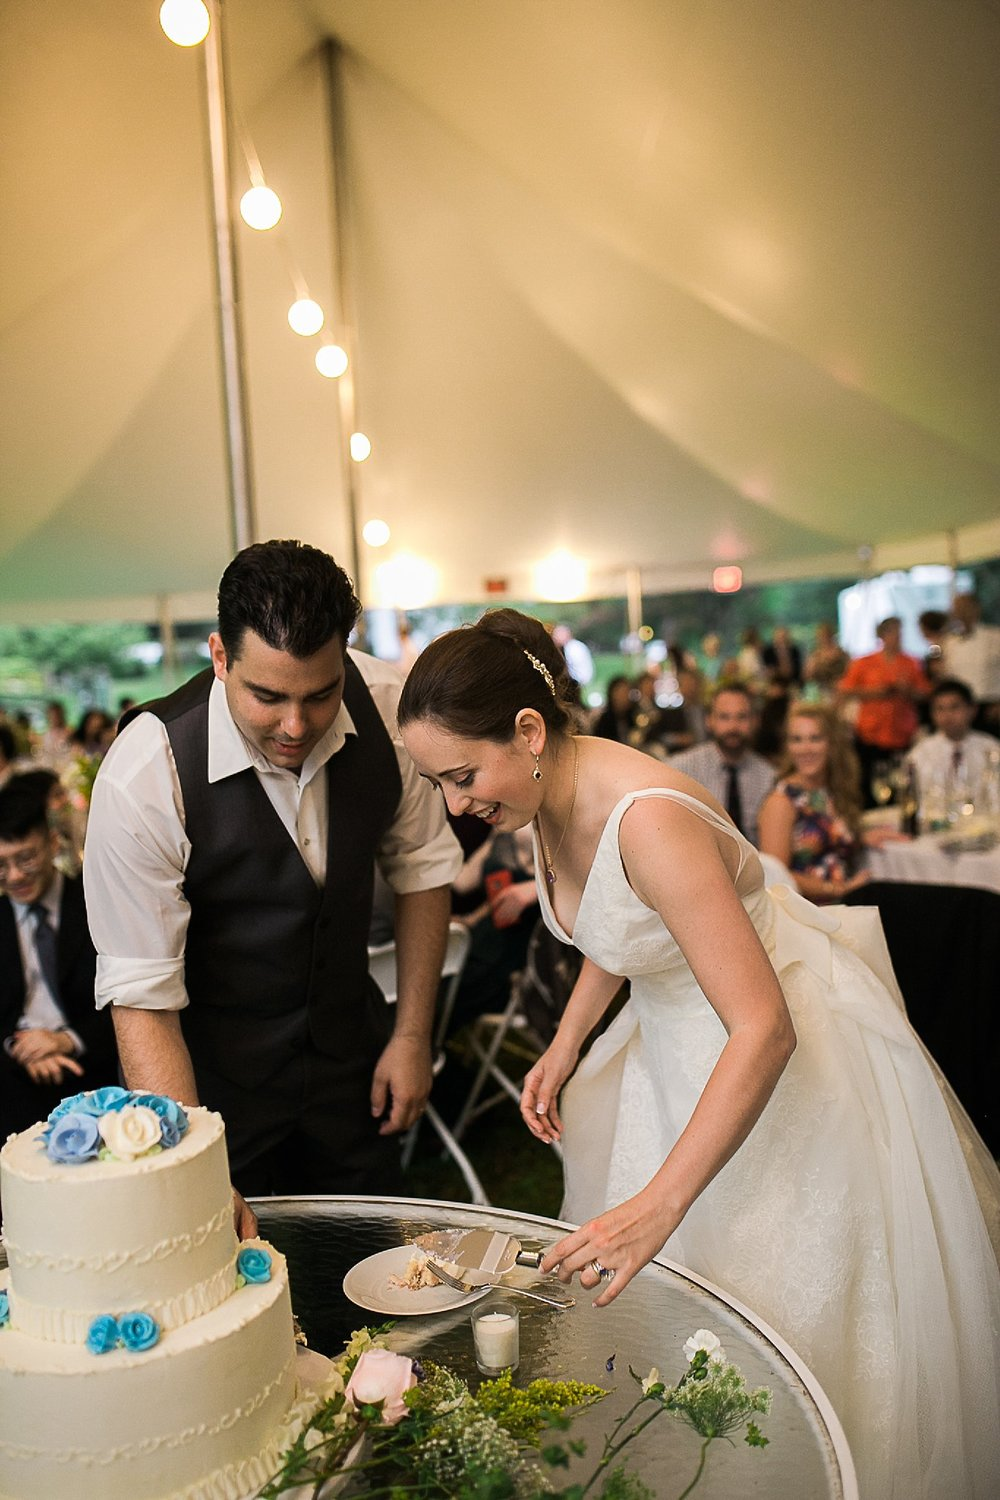 Mount Kisco Backyard Wedding Hudson Valley Photographer Sweet Alice Photography82.jpg